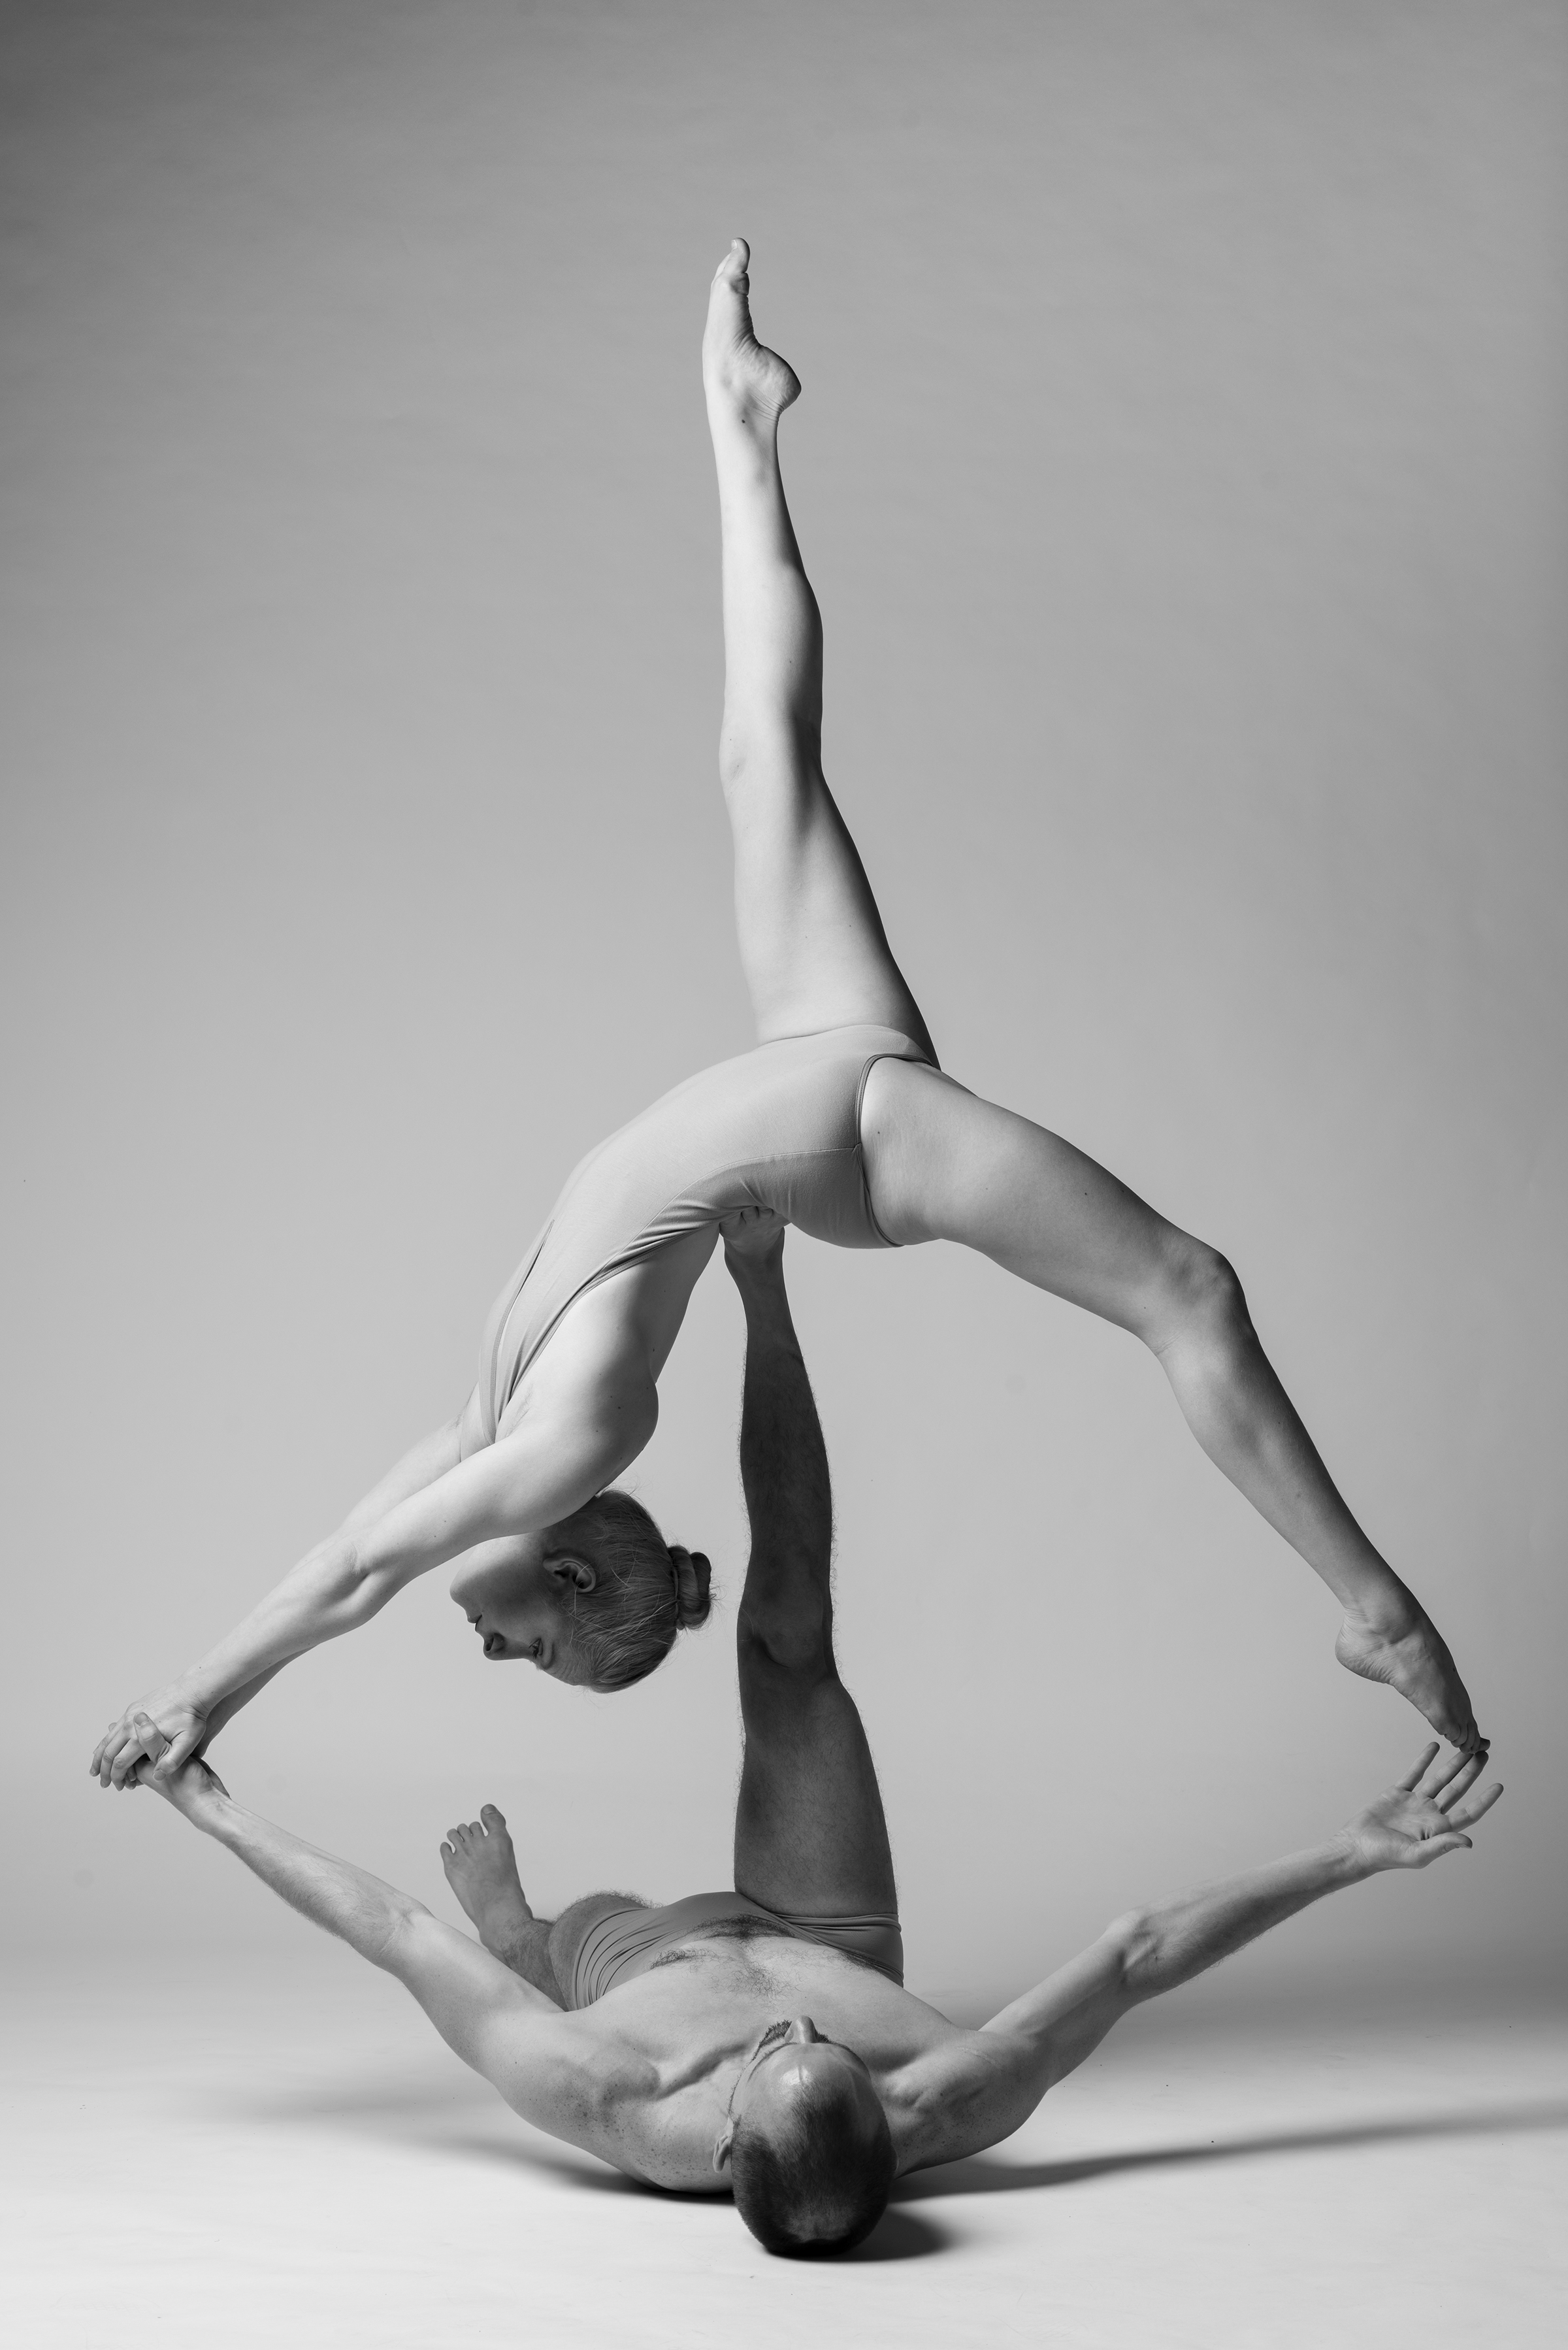 Empowered acro Co-Founders Chris Cox and Katrina Repman